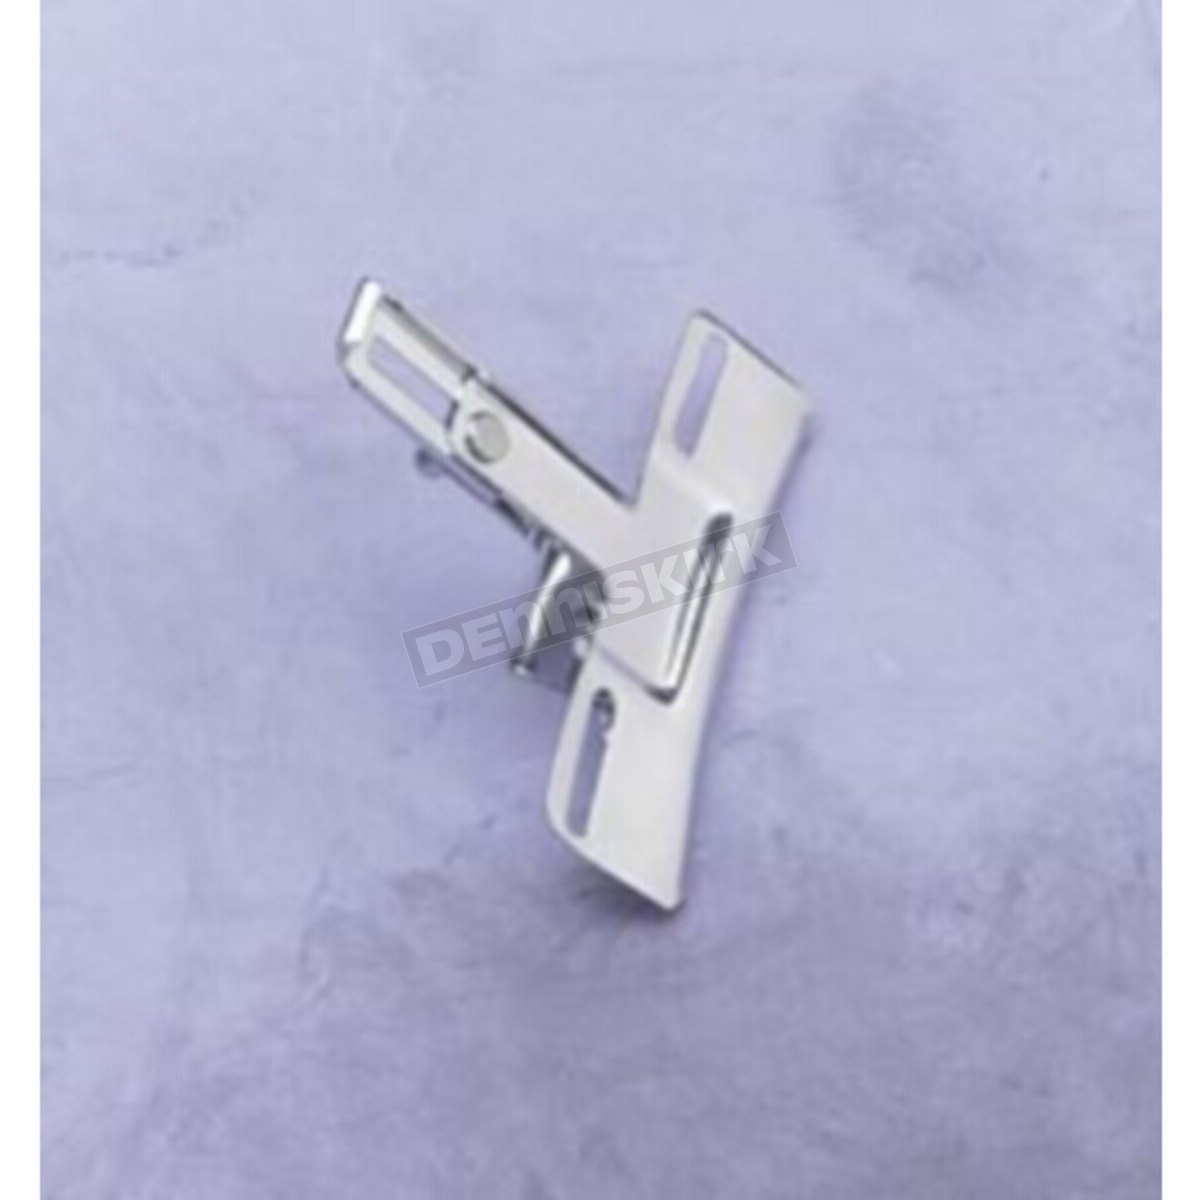 Replacement License Plate Mount Bracket - DS-193810